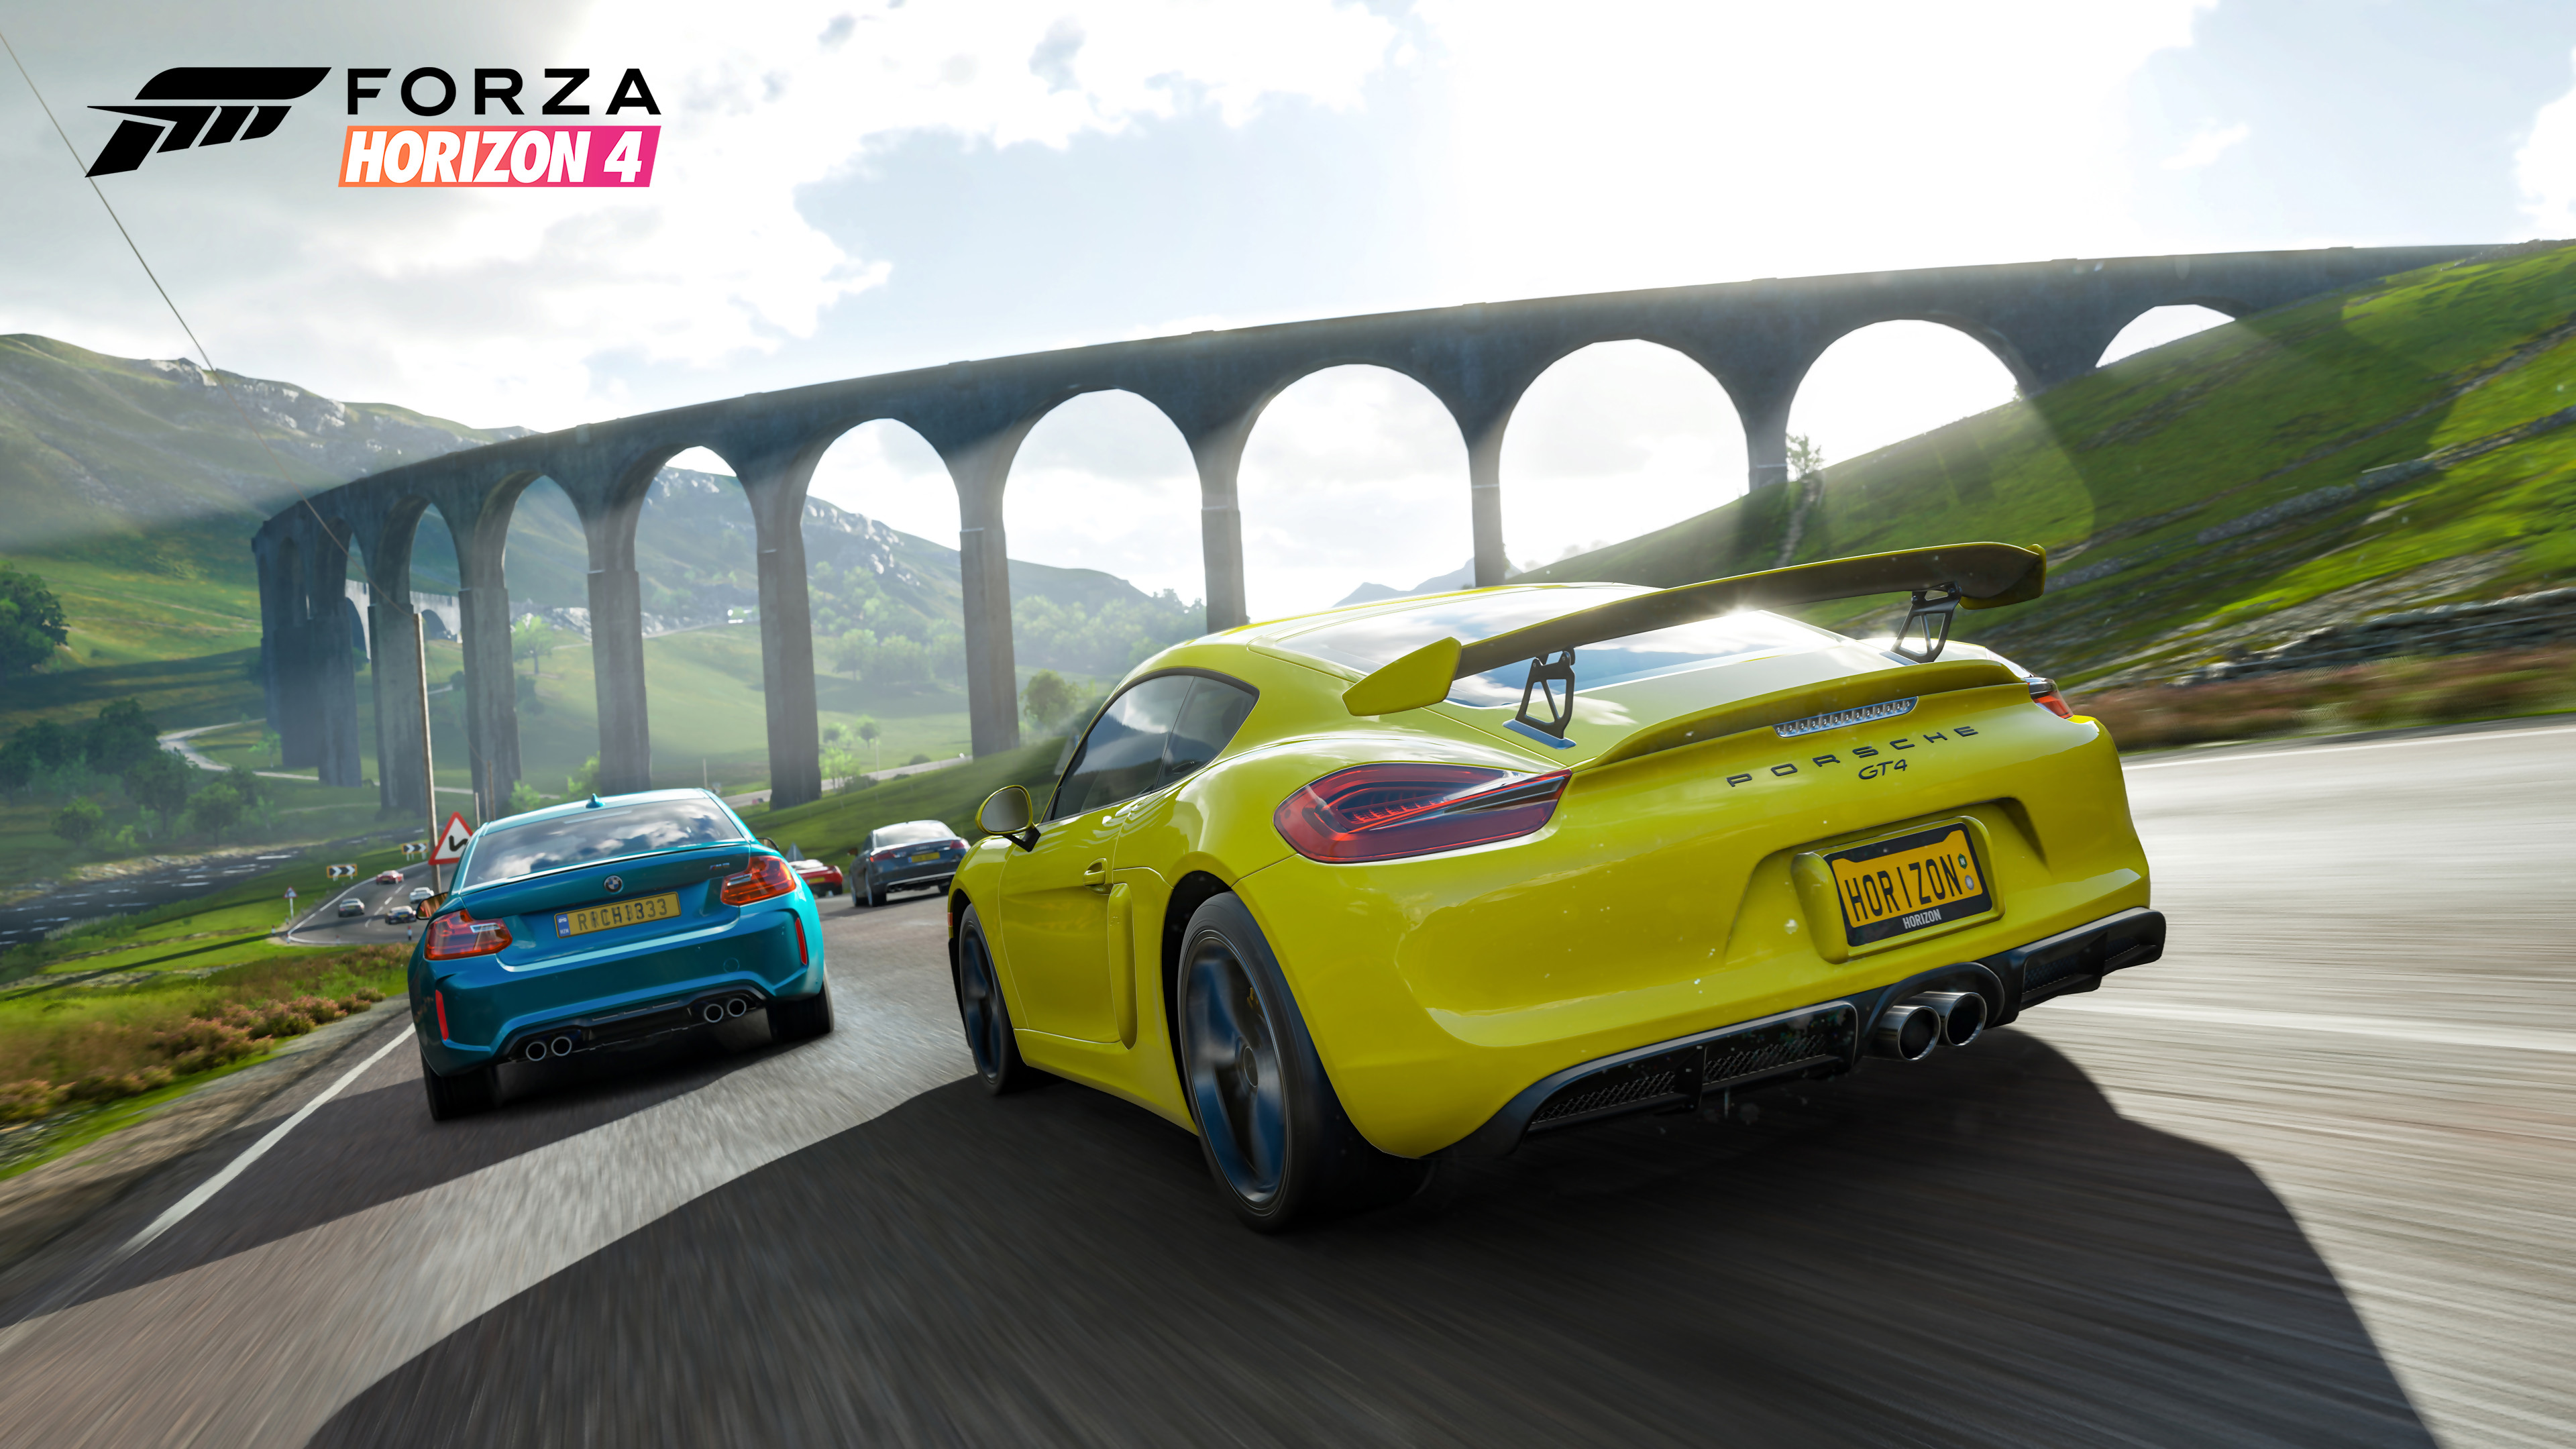 forza horizon 4 notre avis apr s 2h de route sur les routes anglaises. Black Bedroom Furniture Sets. Home Design Ideas